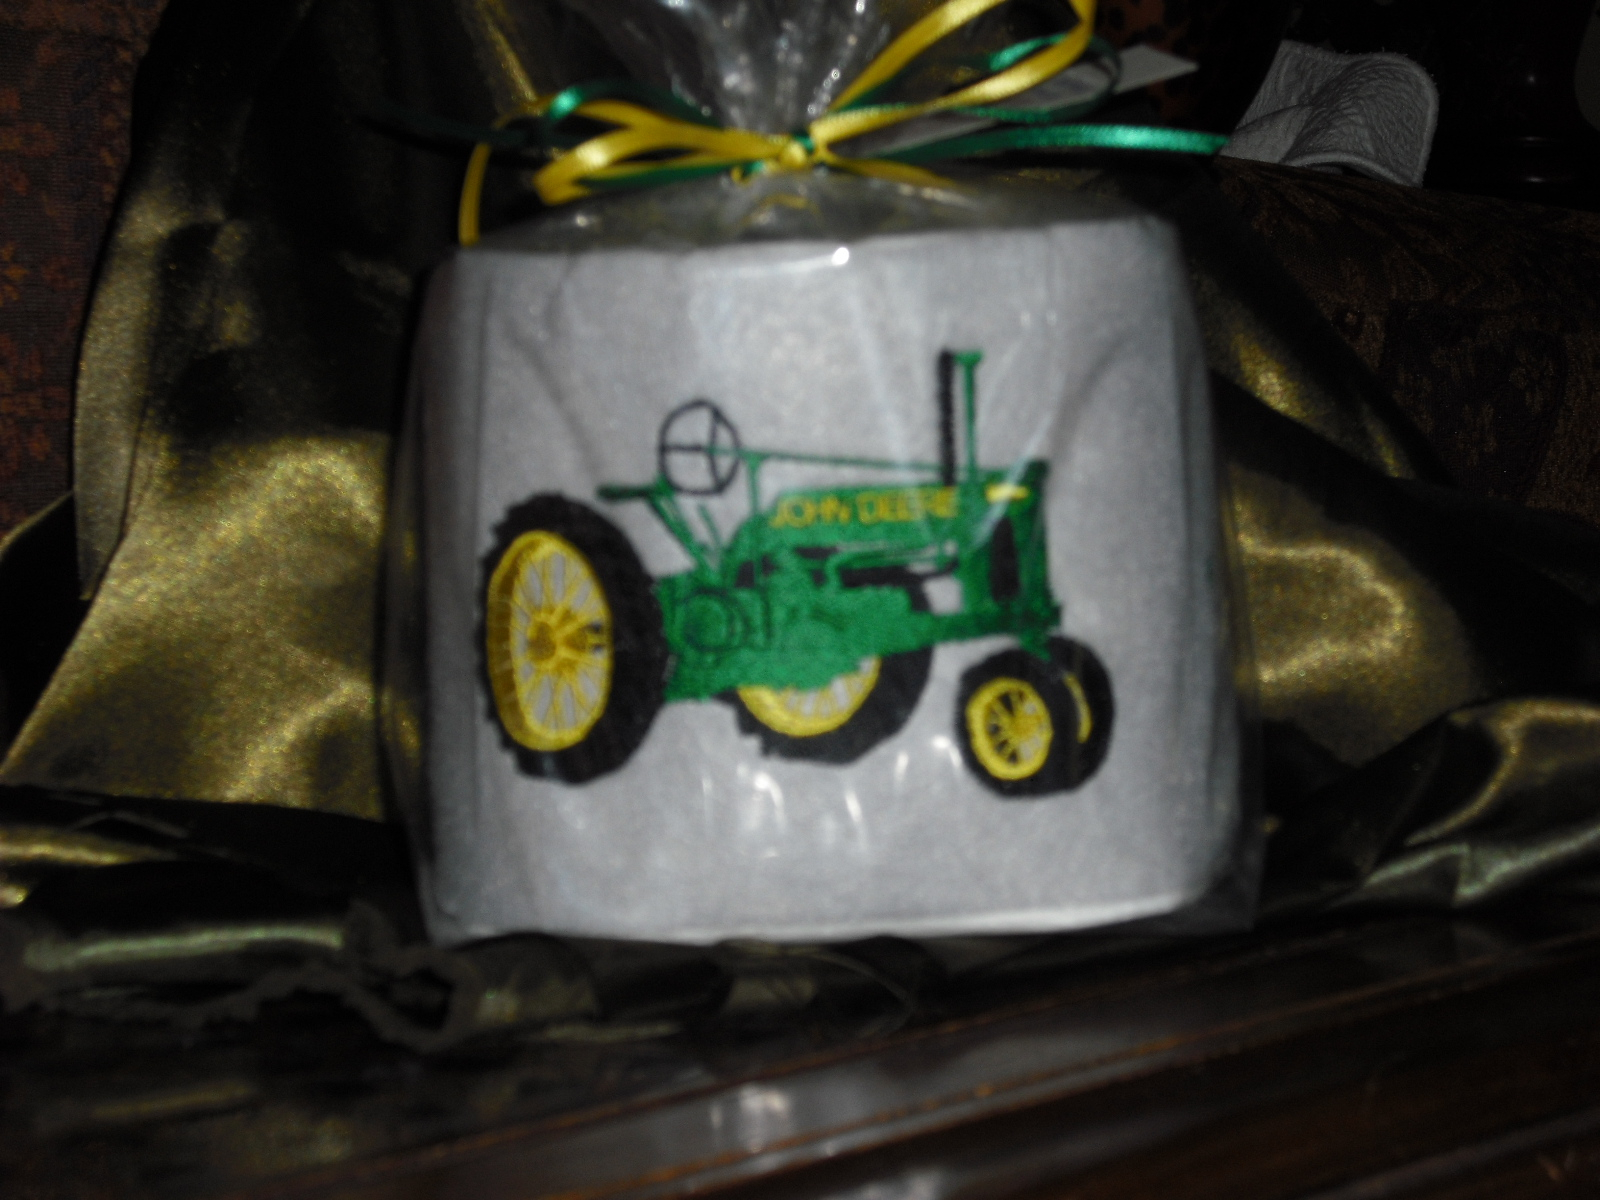 John Deere Embroidery Patterns Free Embroidery Designs Cute Embroidery Designs